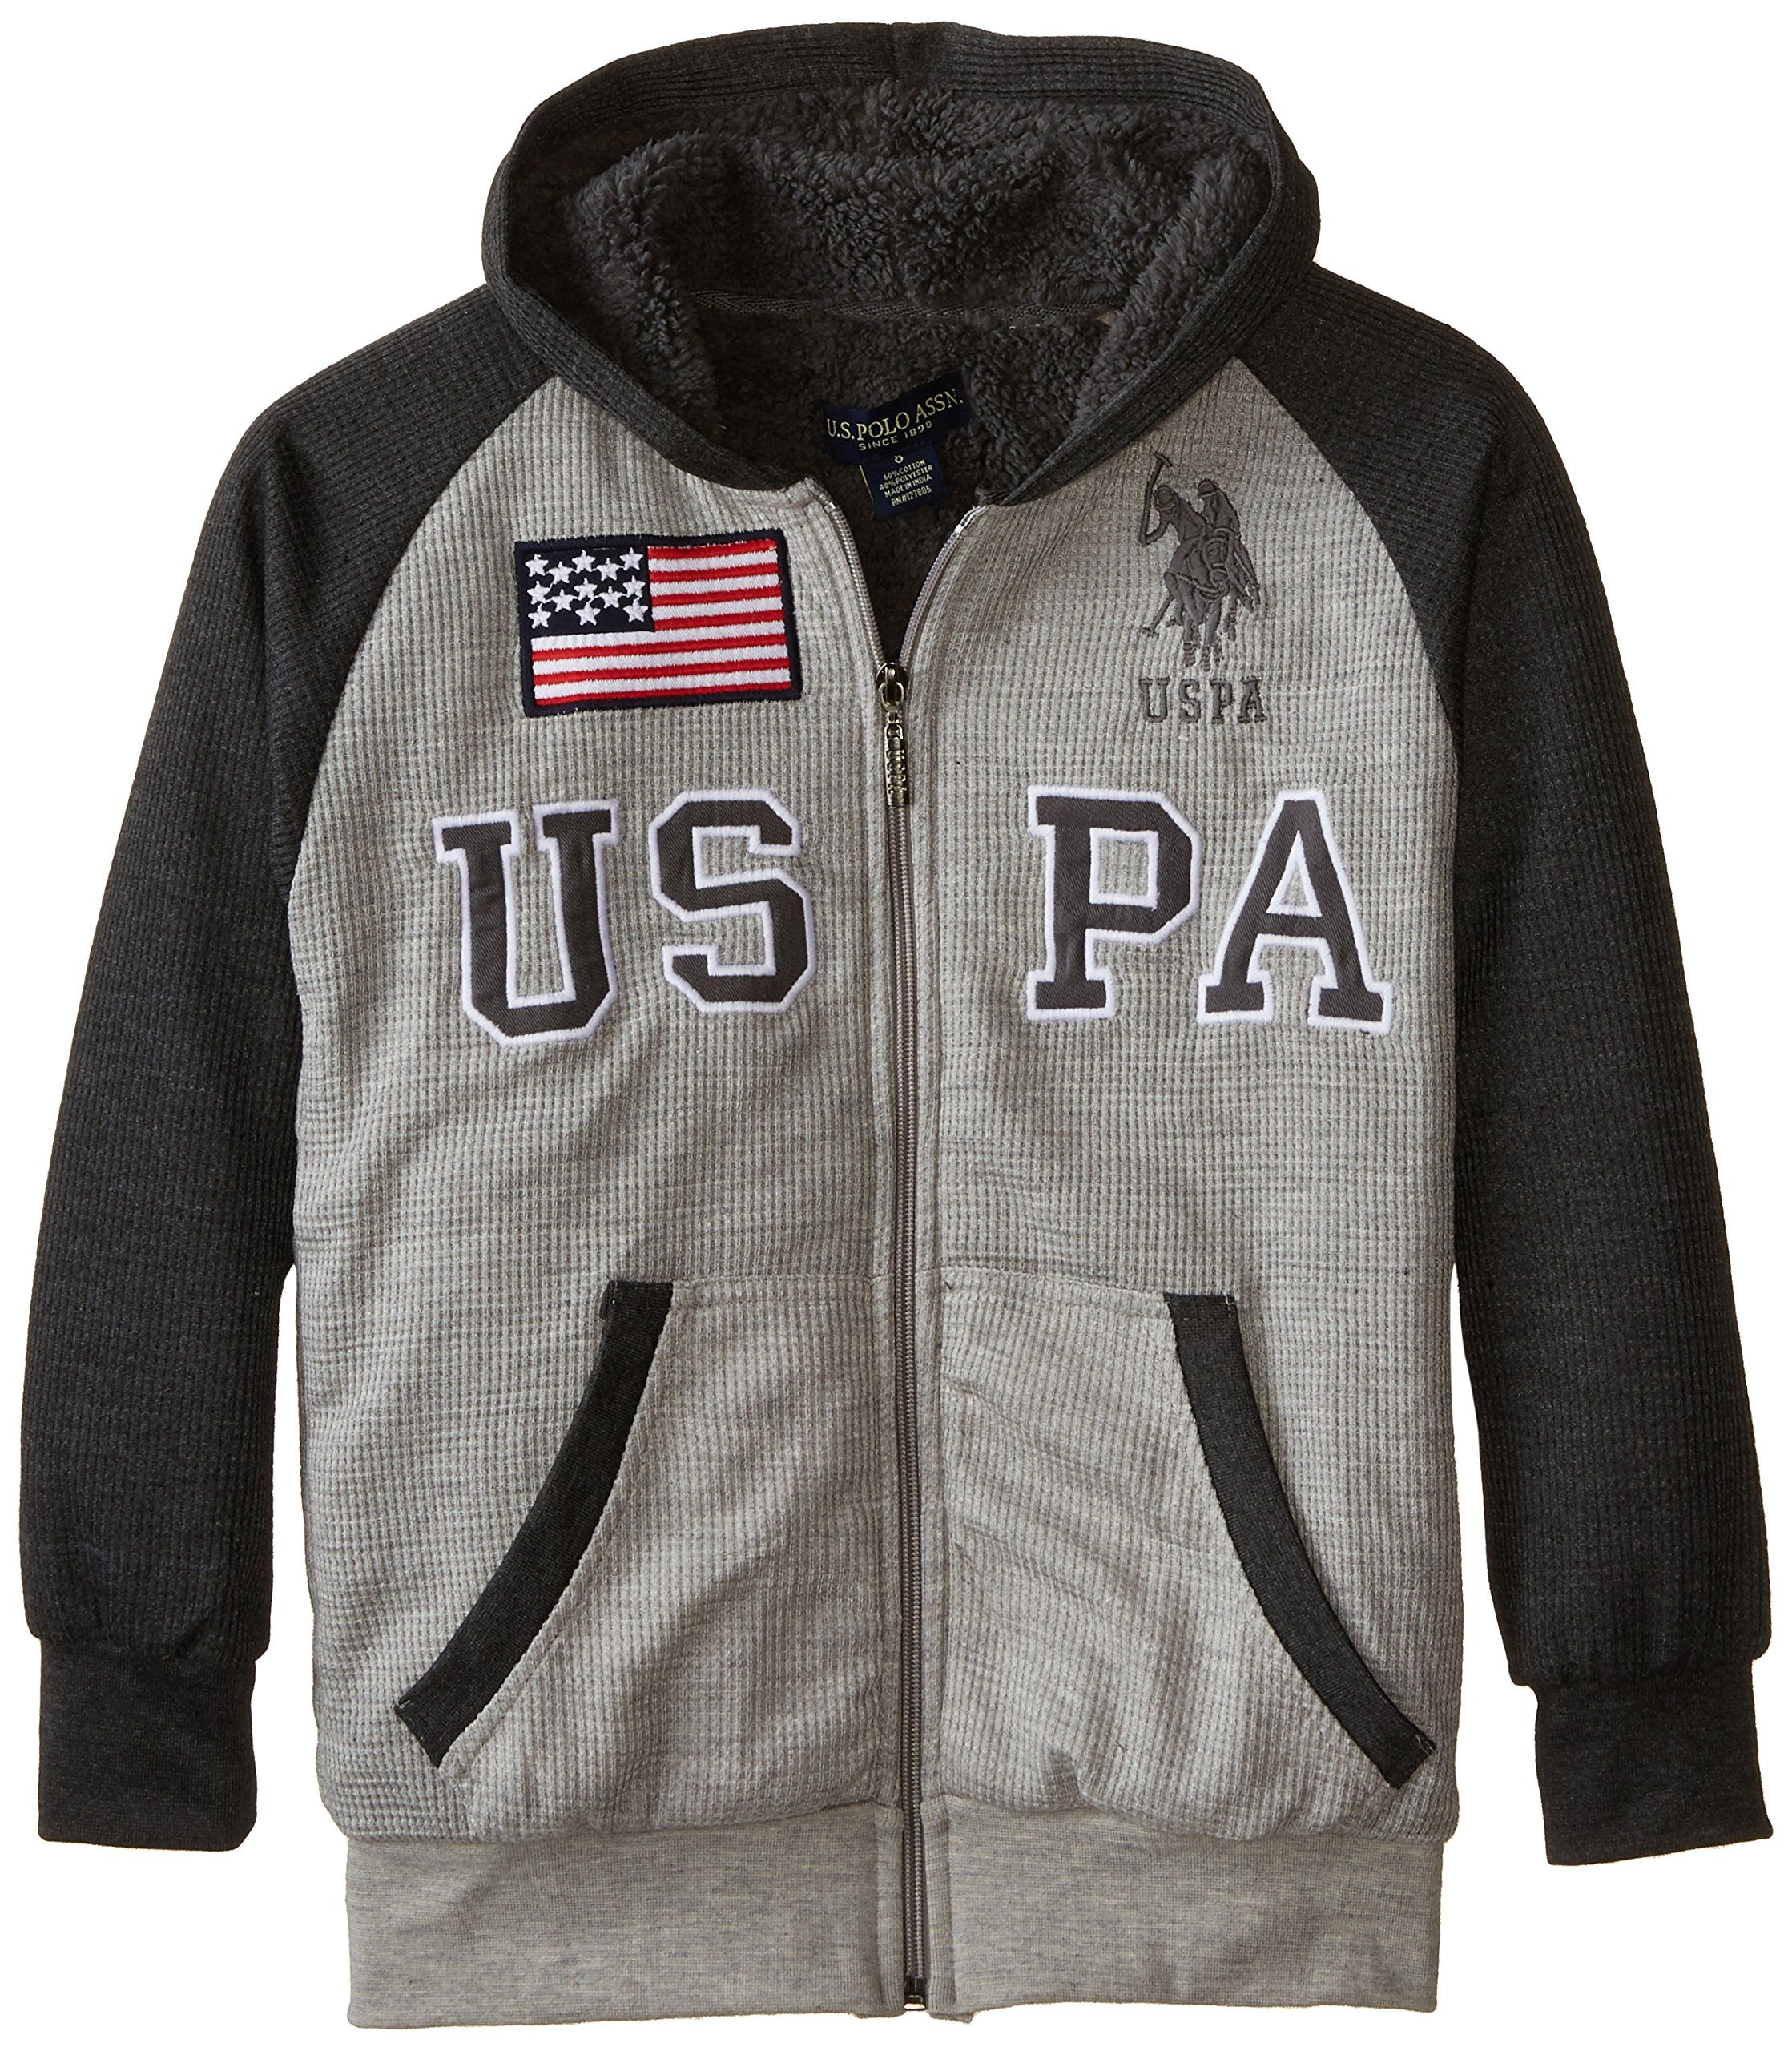 U.S. Polo Assn. Big Boys' Sherpa Lined Thermal Hoodie, Light Heather Gray, 8. Color blocked thermal jacket has rib knit cuffs and hem. Kangaroo pockets. Embroidery and patch logos. Sherpa lined.